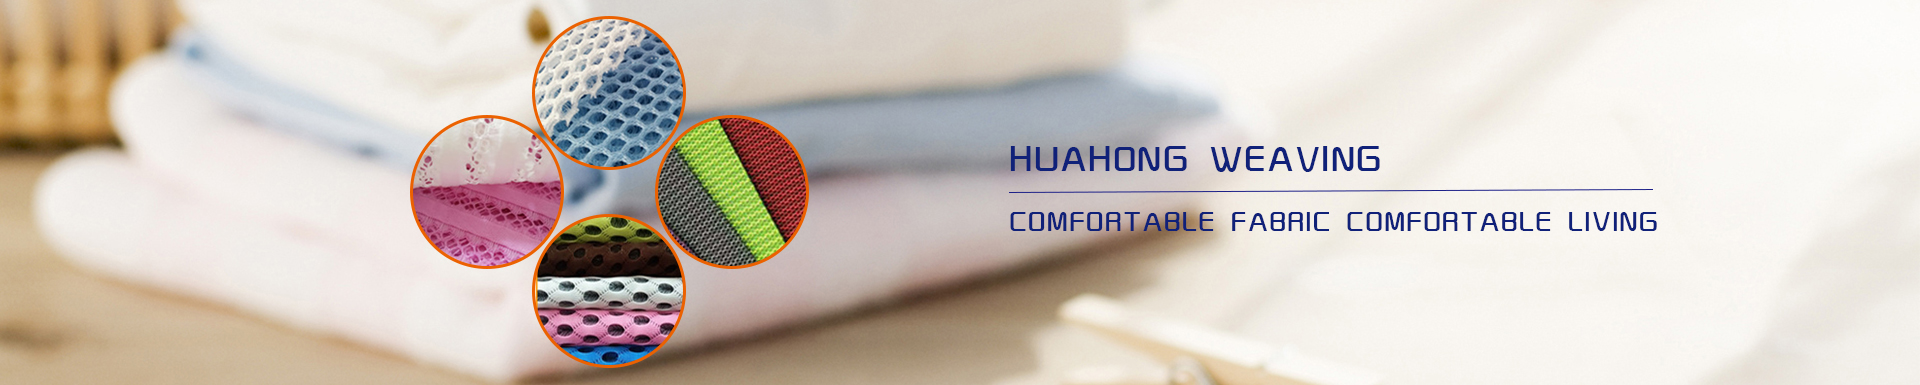 changshu city huahong weaving co.,ltd